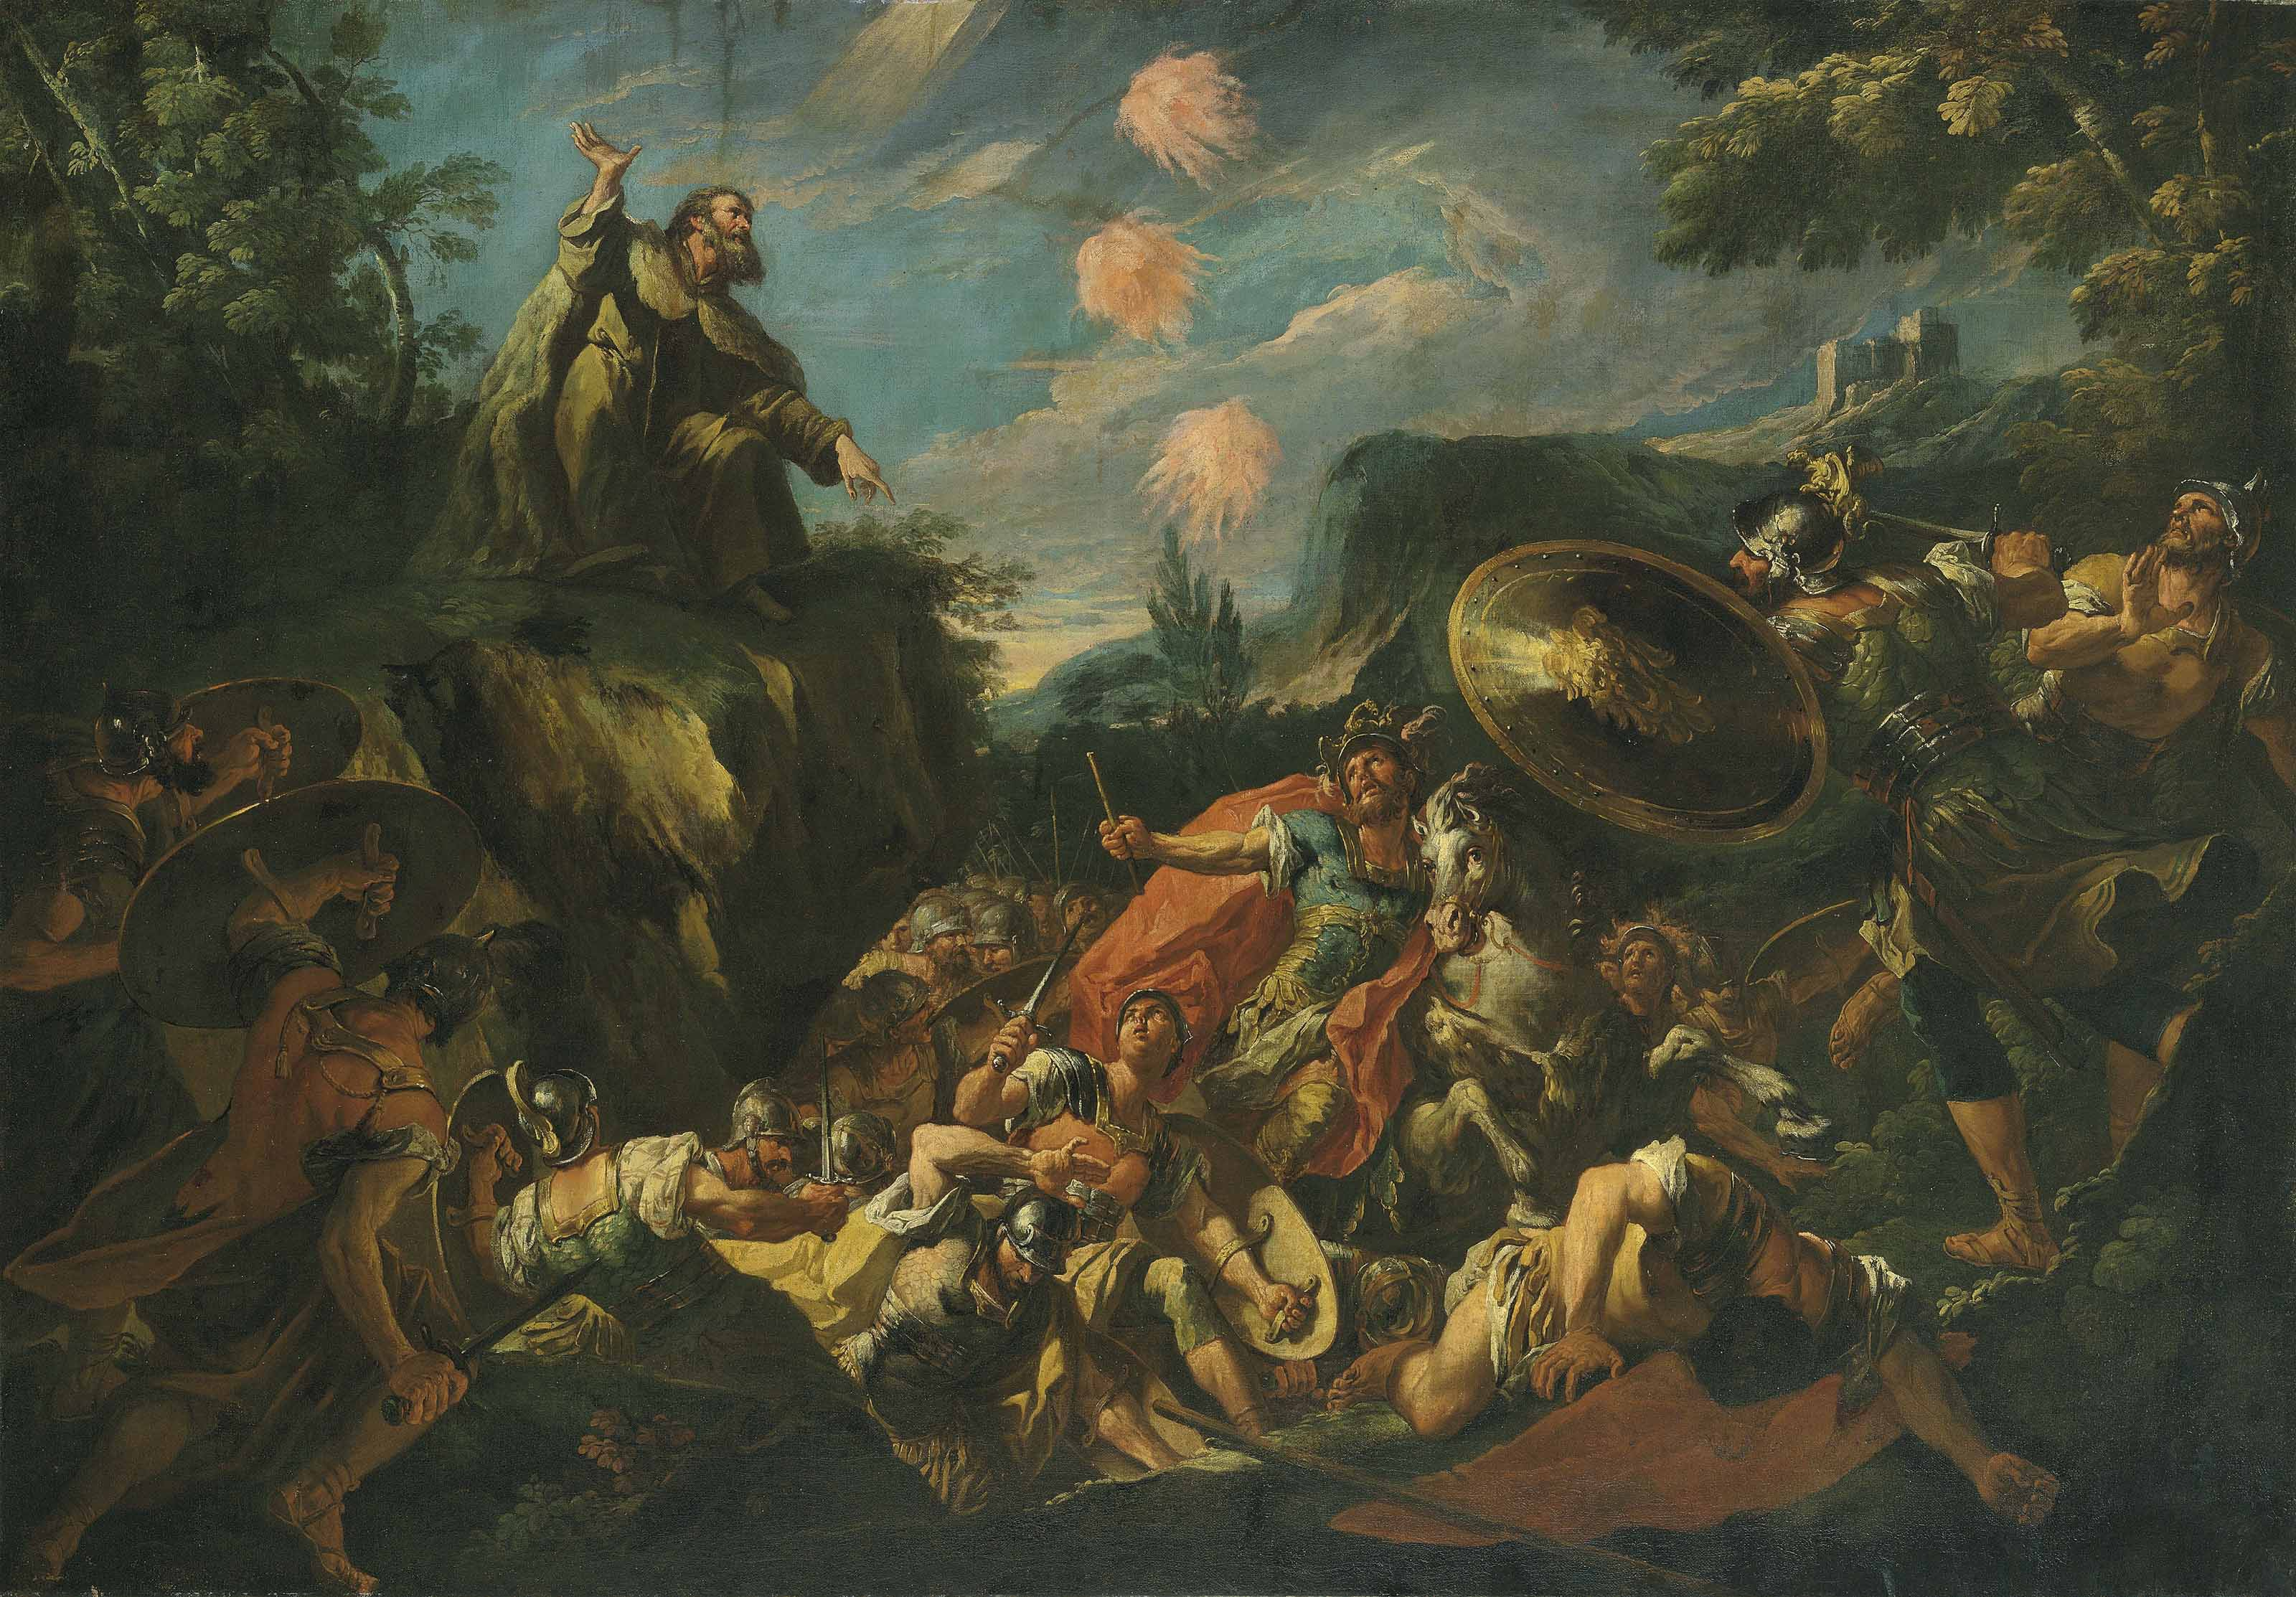 Elijah calling fire from Heaven to destroy the soldiers of Ahaziah